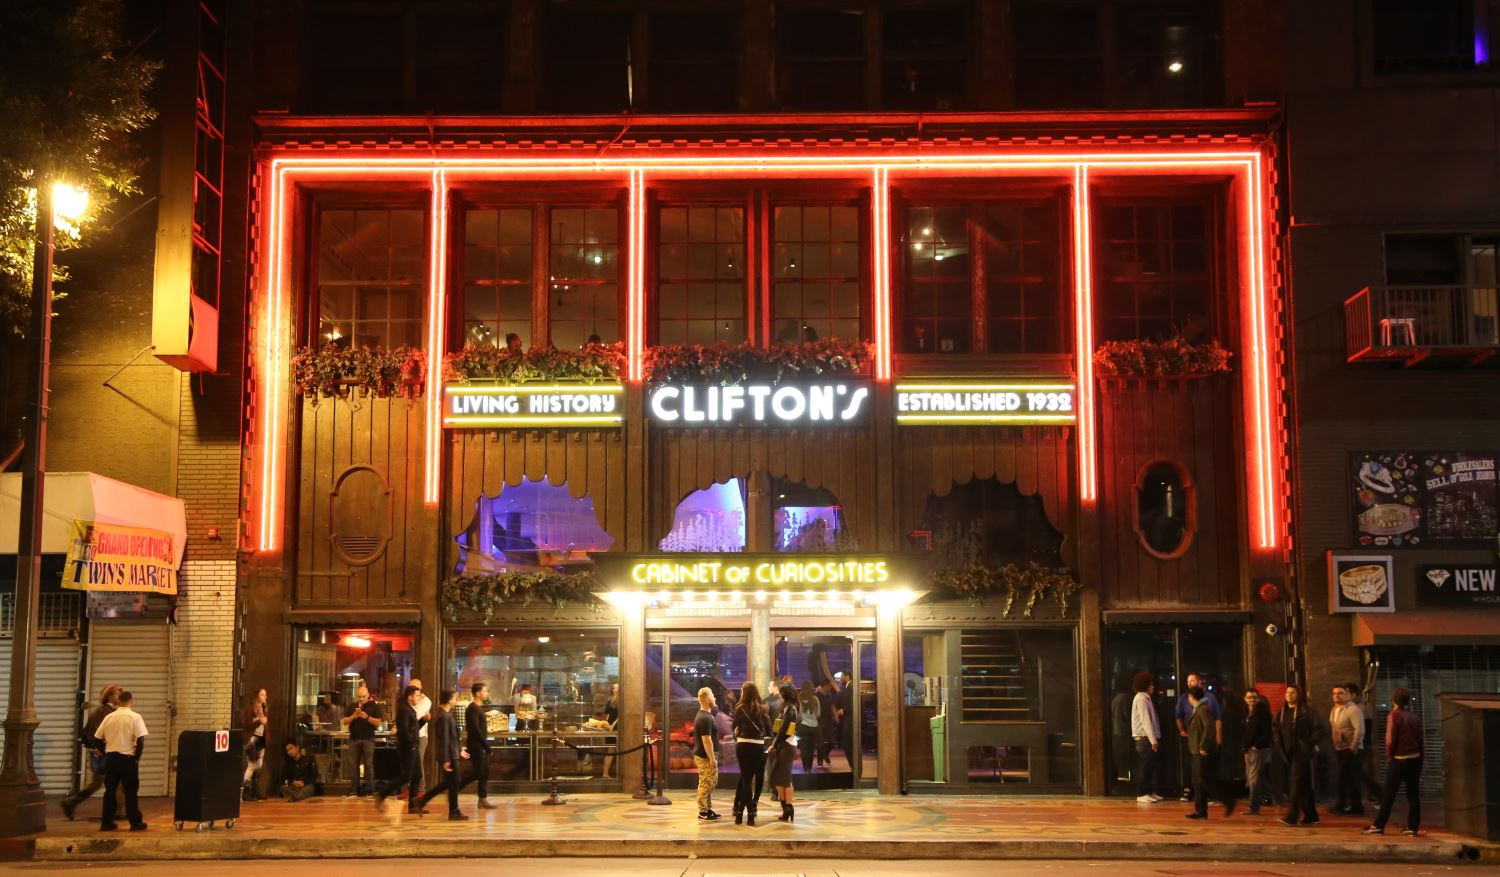 Clifton's Cafeteria - A Menagerie of Delights